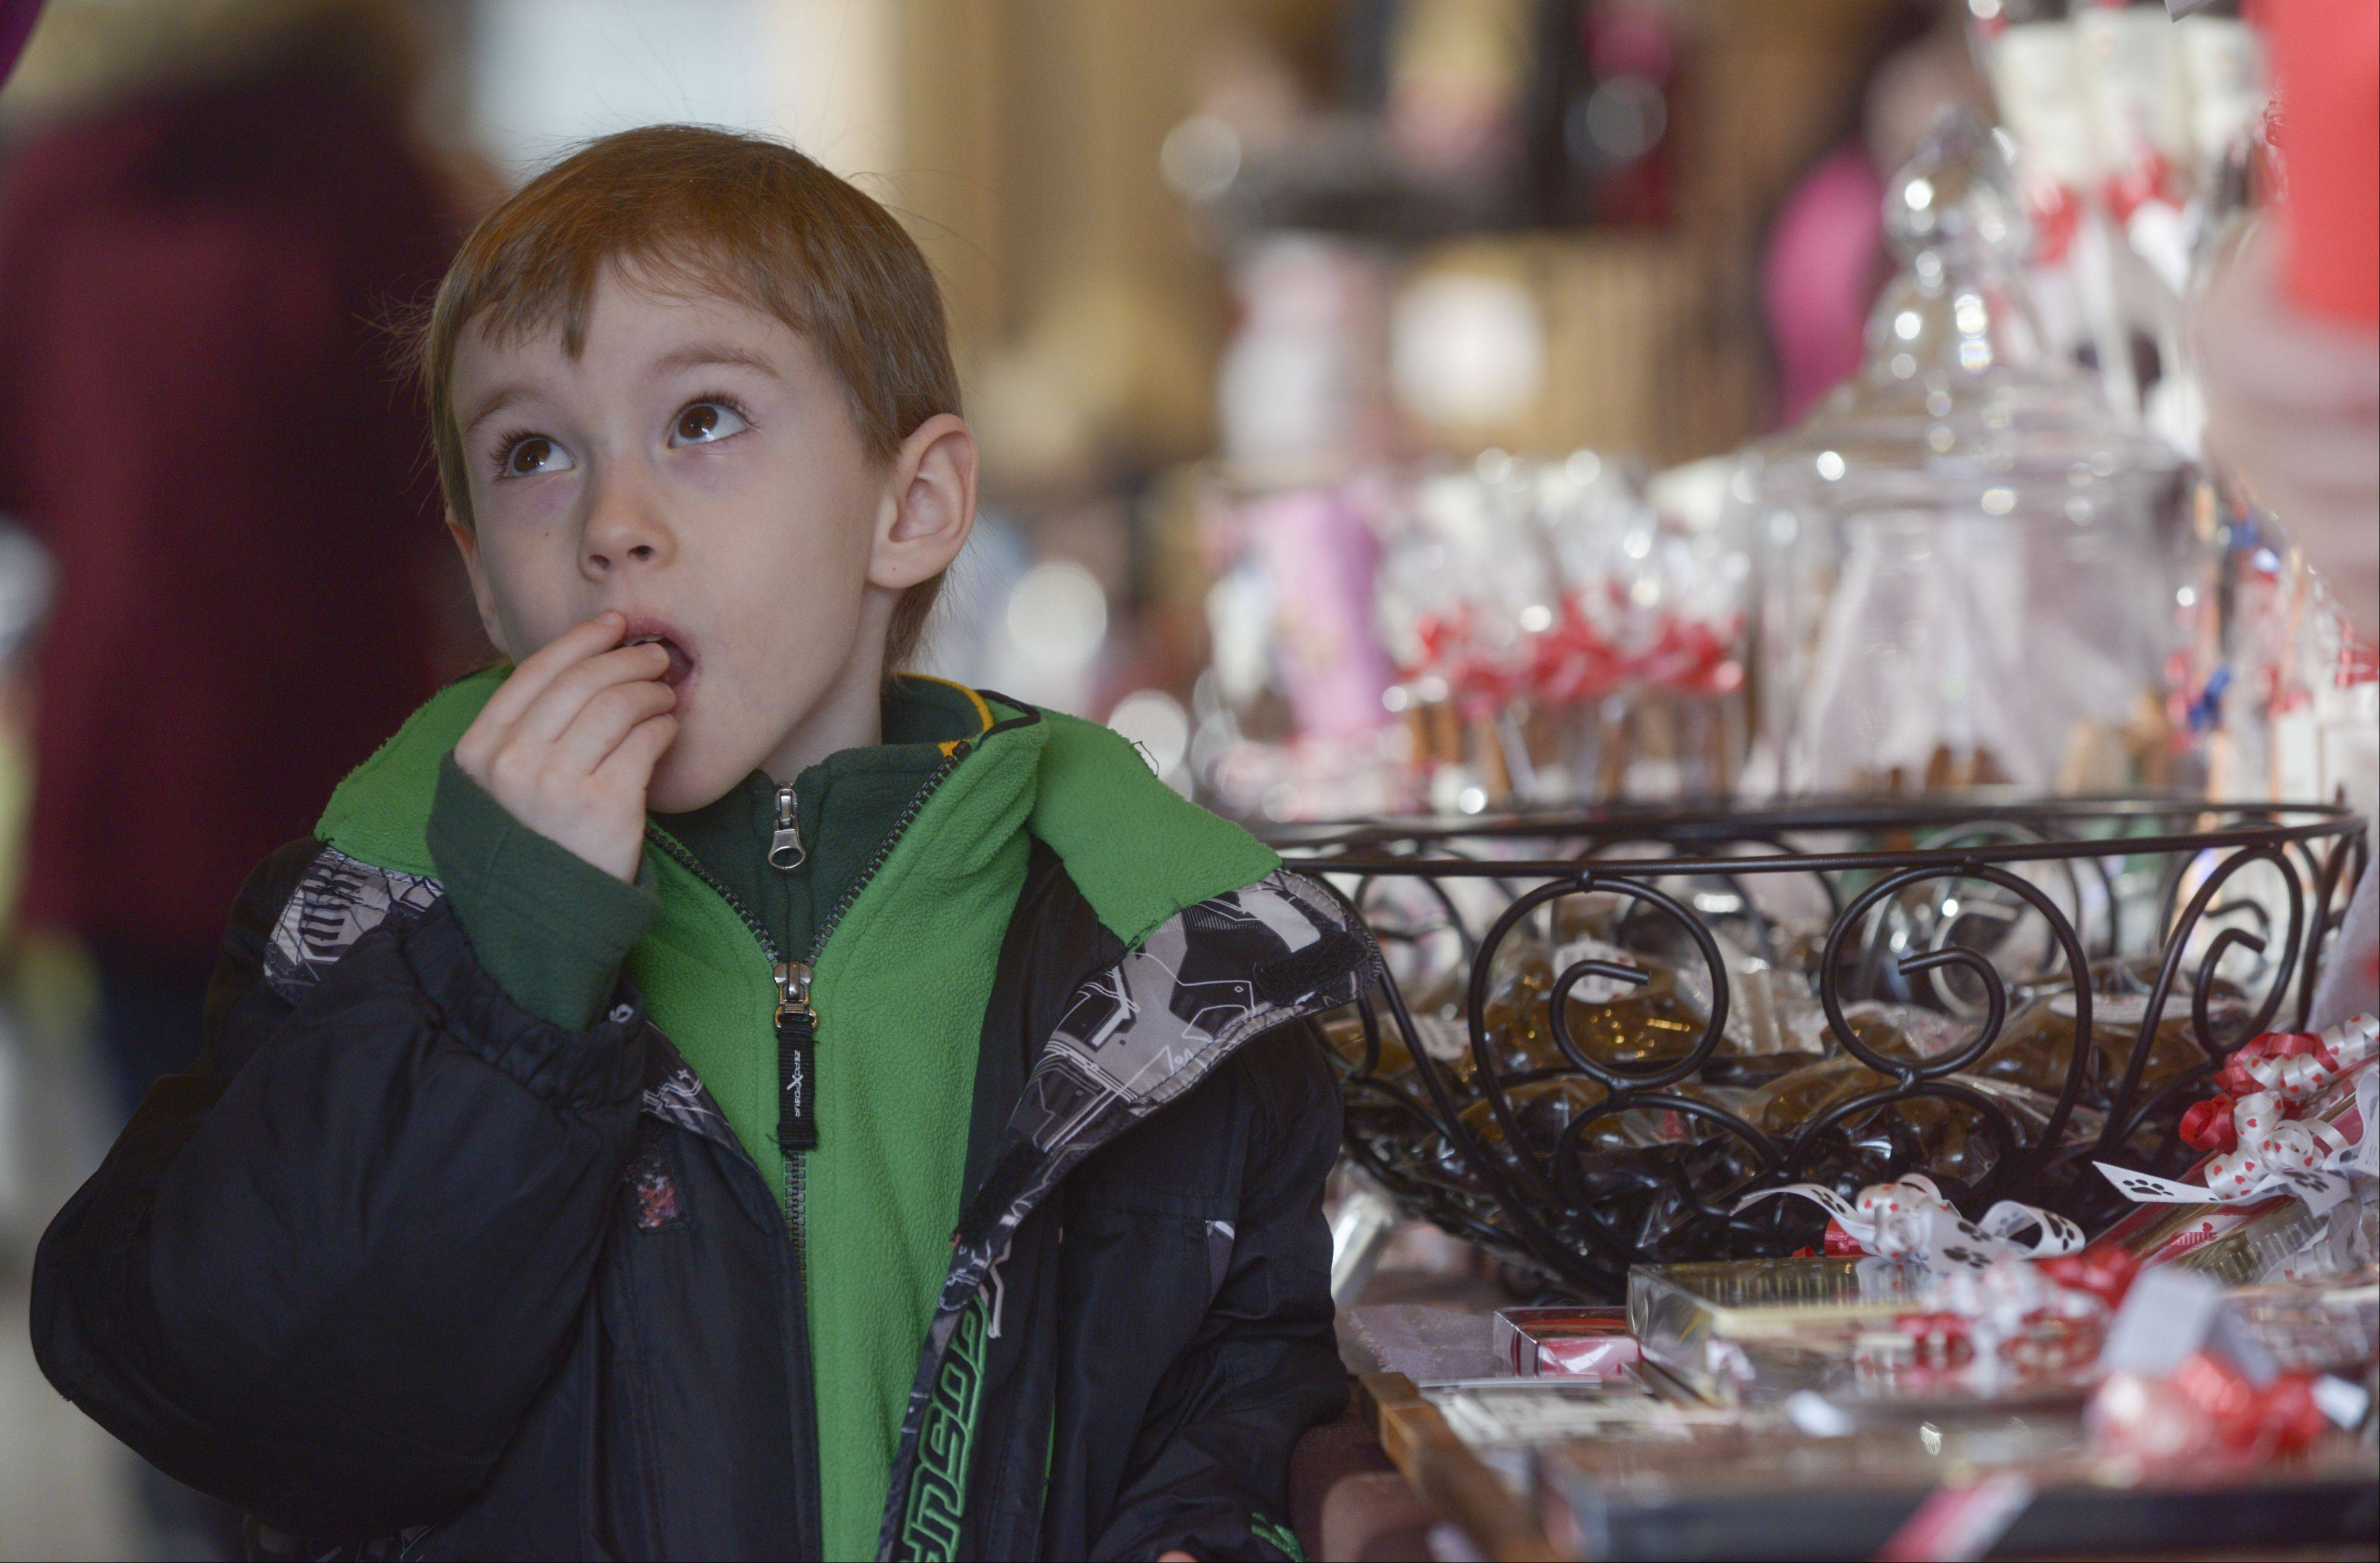 Colin Graveen, 5, of Bolingbrook samples some chocolate Sunday at the Morton Arboretum's Chocolate Expo and Market. The event featured nearly 20 vendors offering different chocolate concoctions.